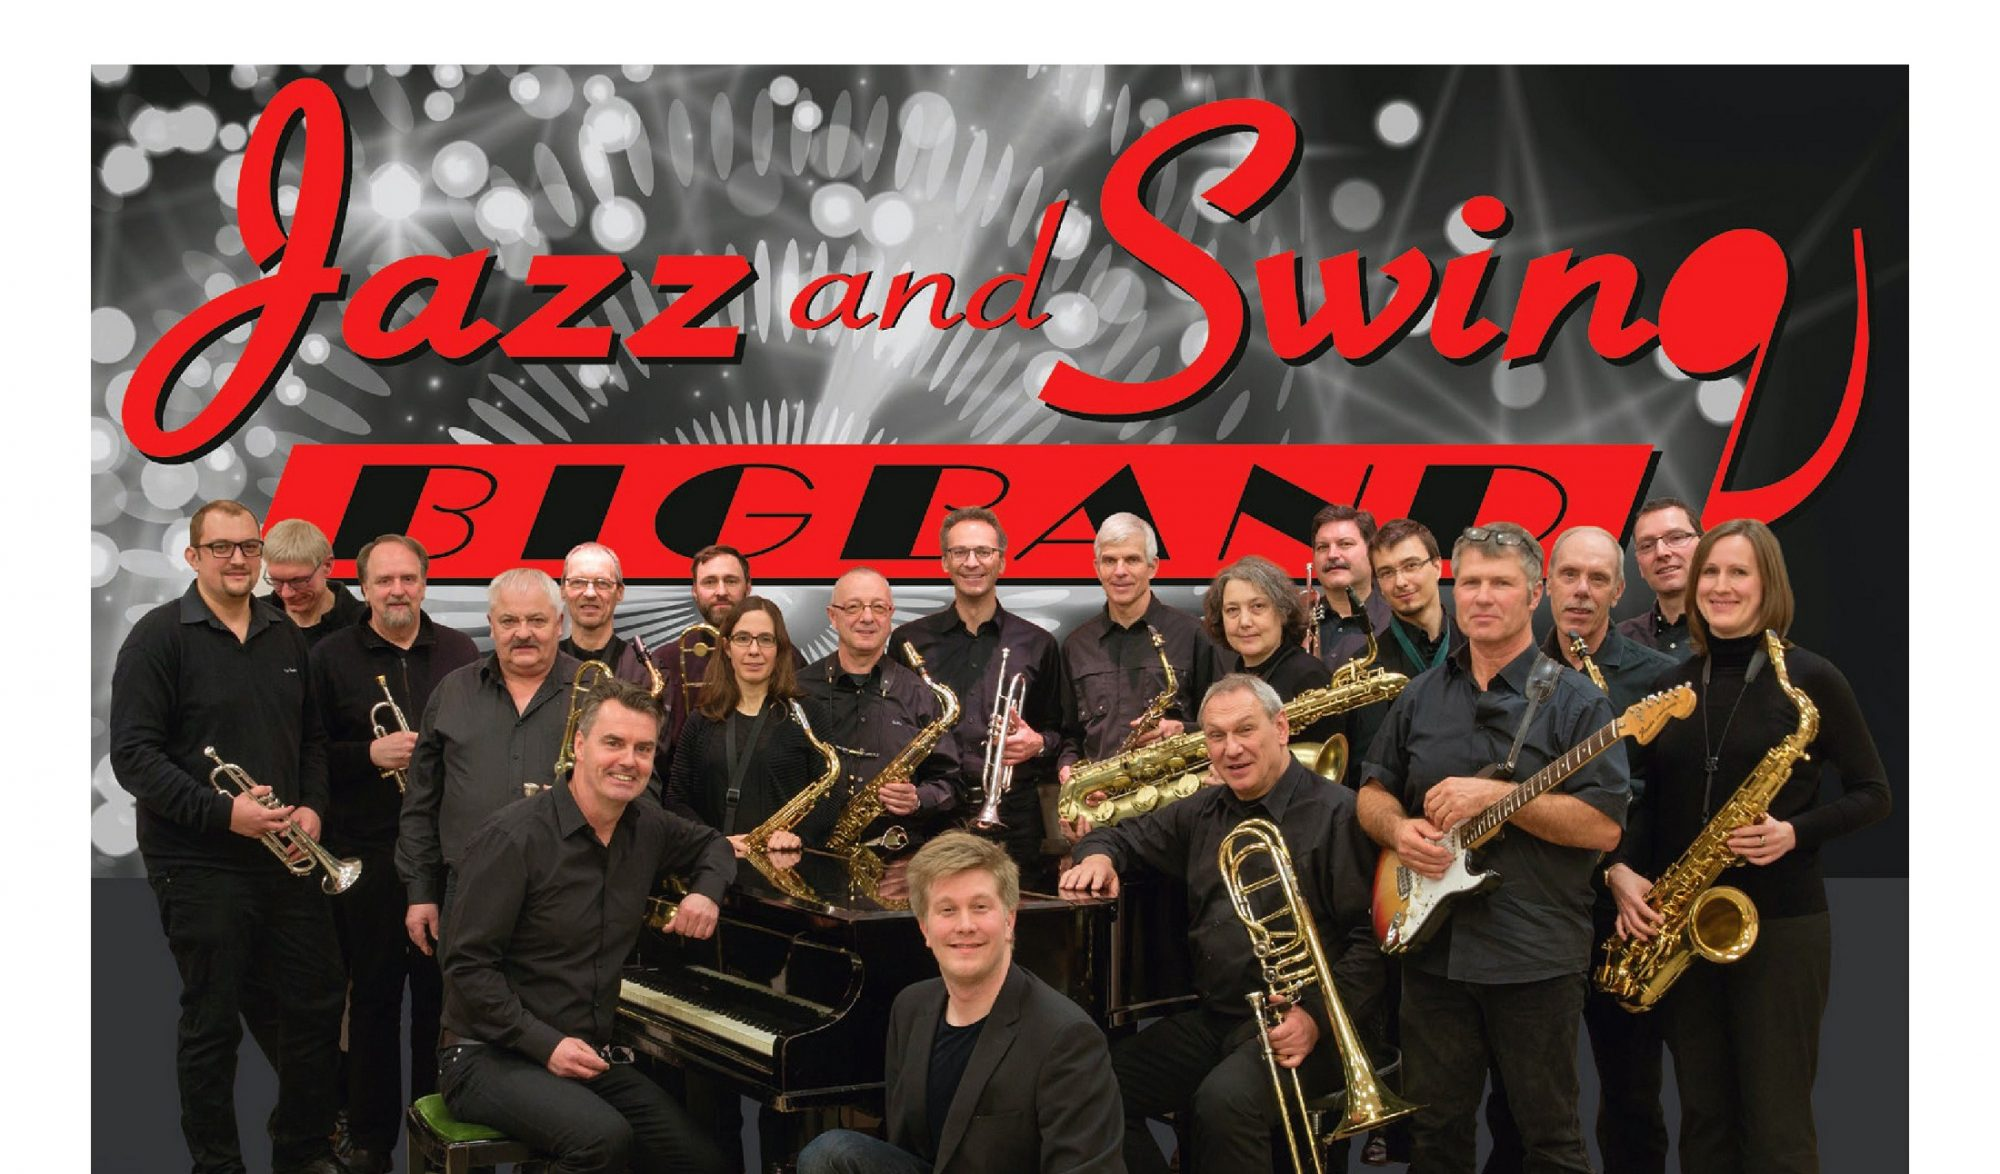 Jazz and Swing BIGBAND